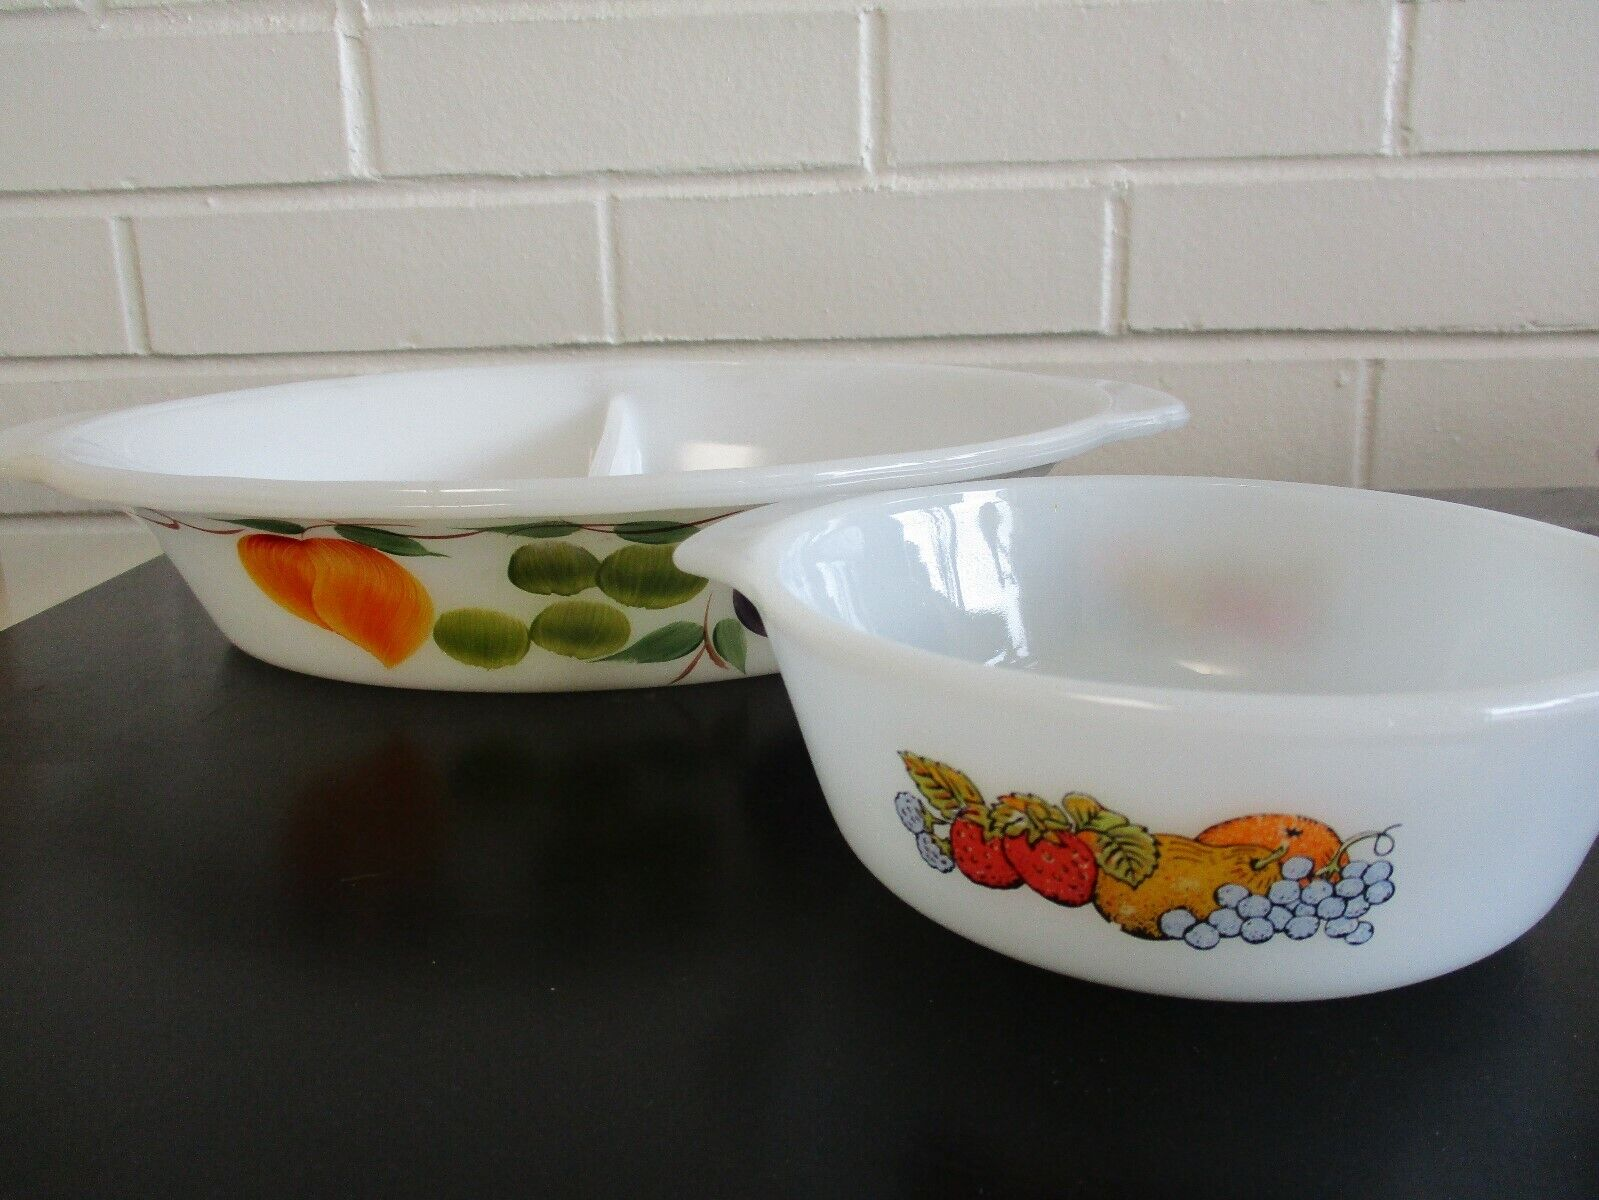 Vintage Oven Microwave Bakeware Serving Dishes Lot Of 2~ Fruit Pattern